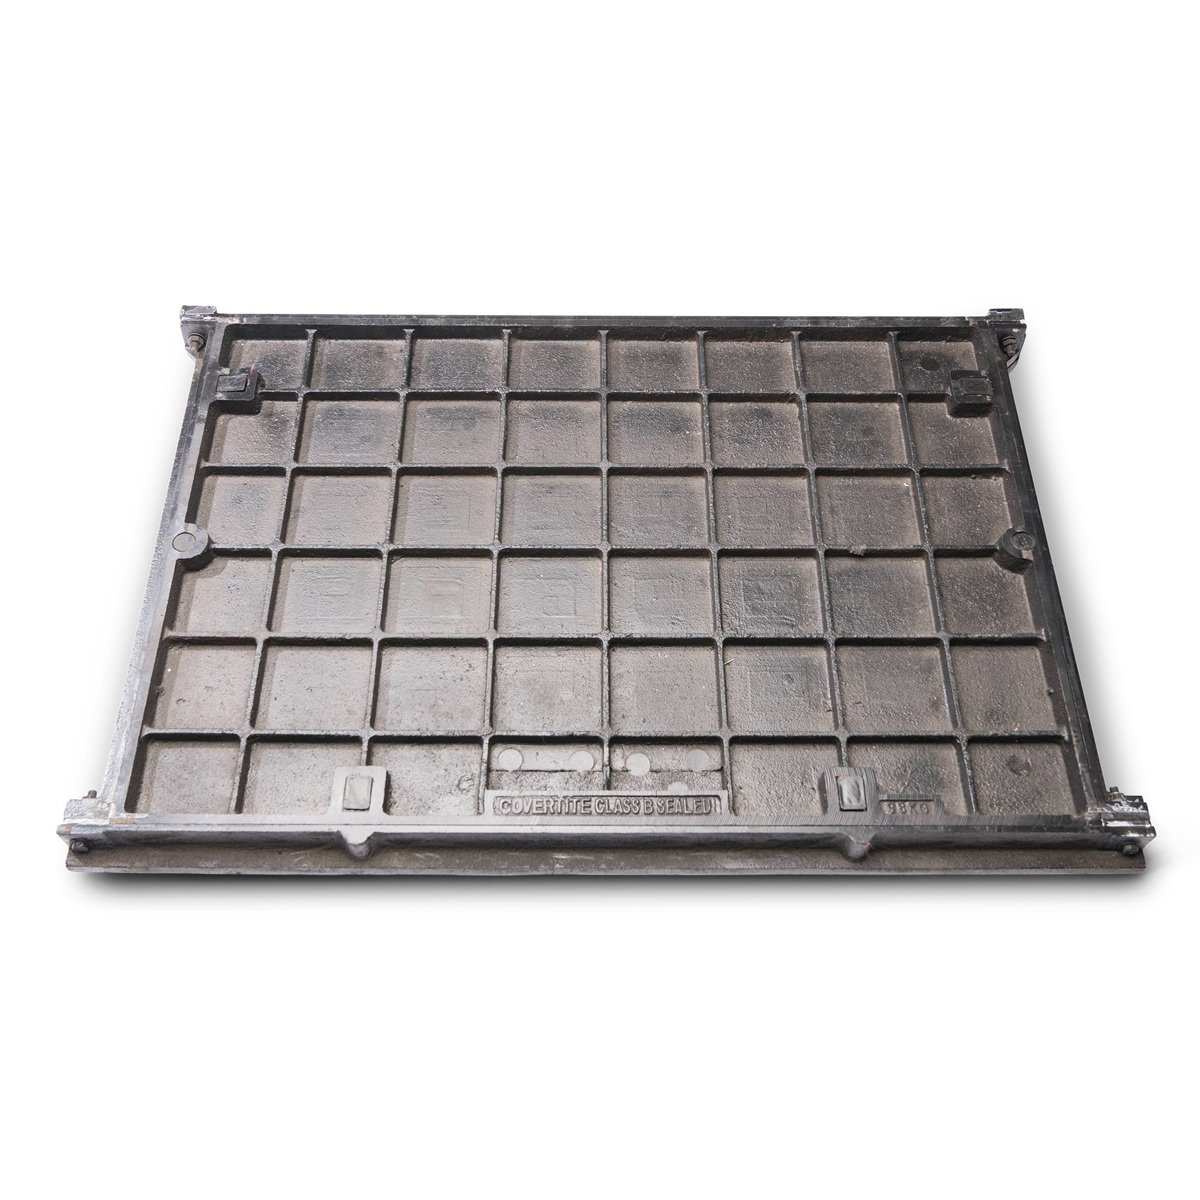 Class B Gatic Access Covers